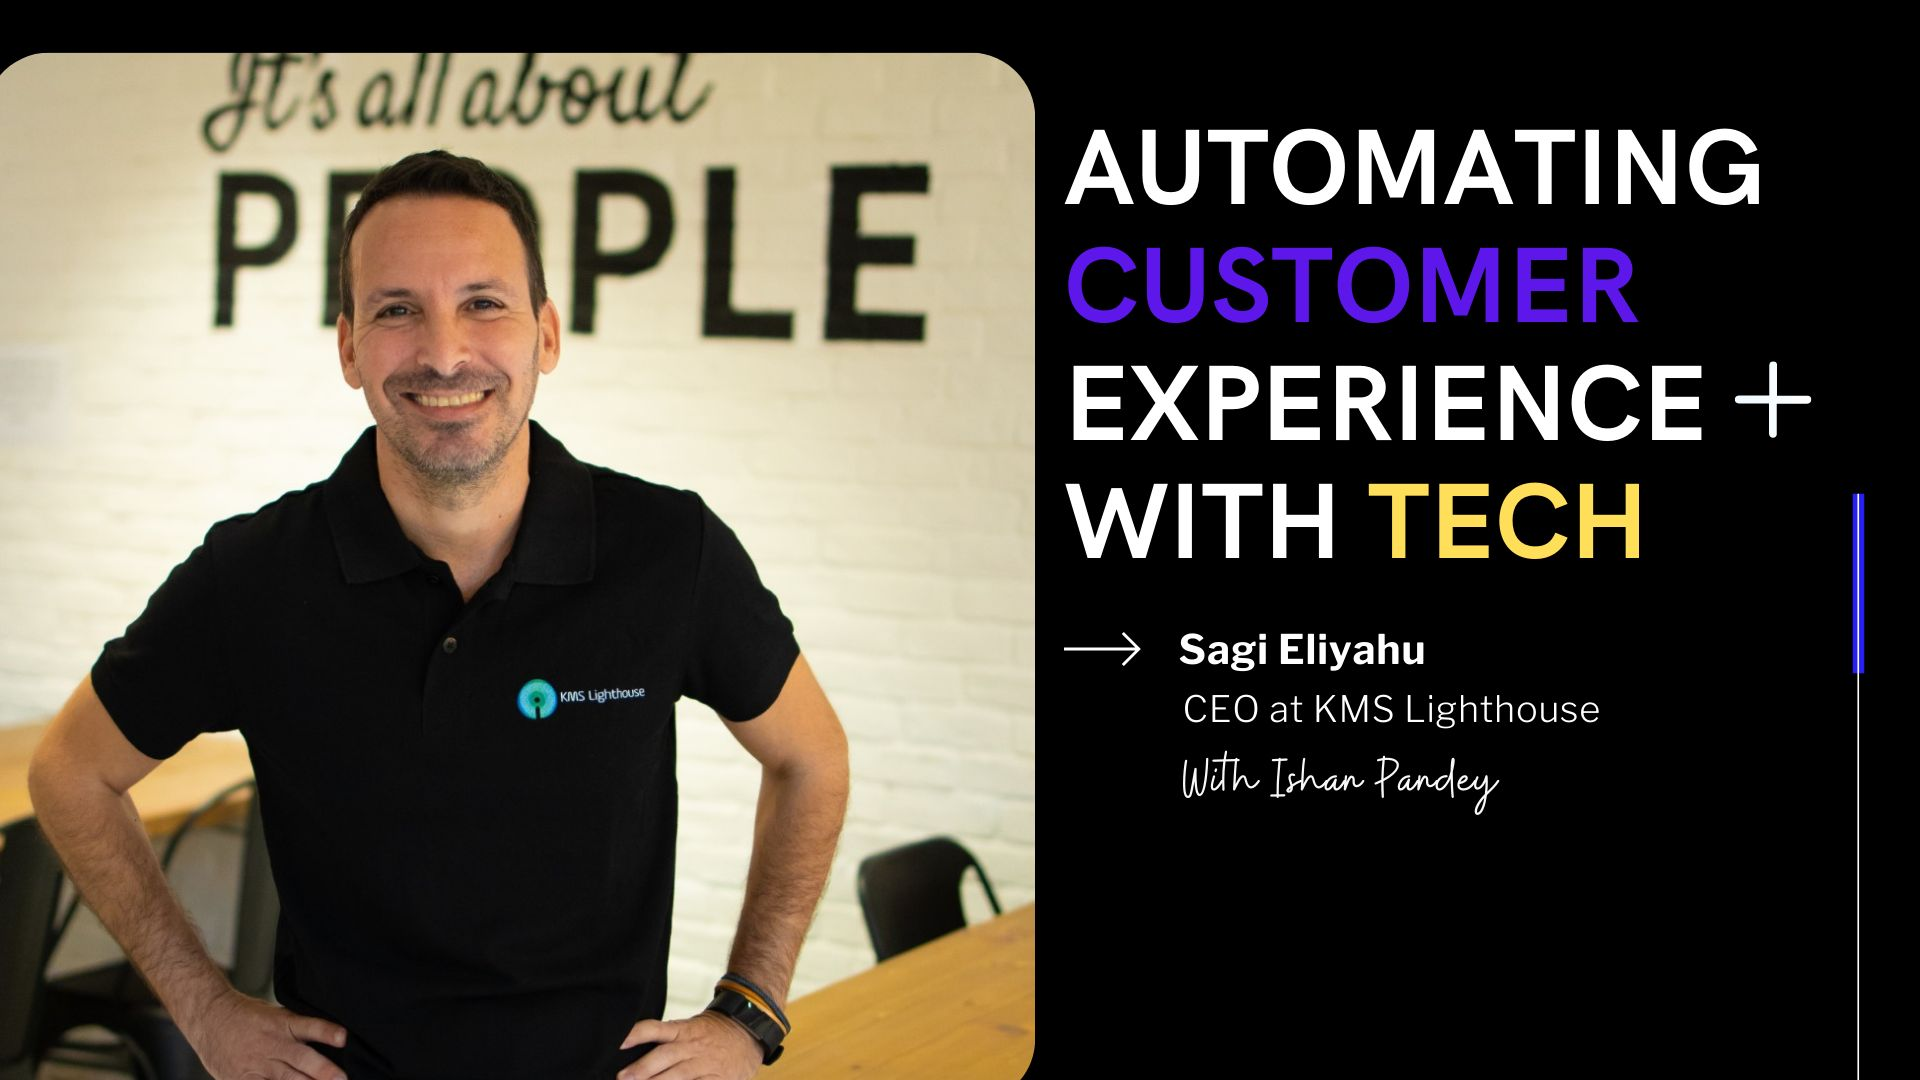 /providing-next-generation-customer-experience-with-sagi-eliyahu-ceo-at-kms-lighthouse-yd2b333l feature image